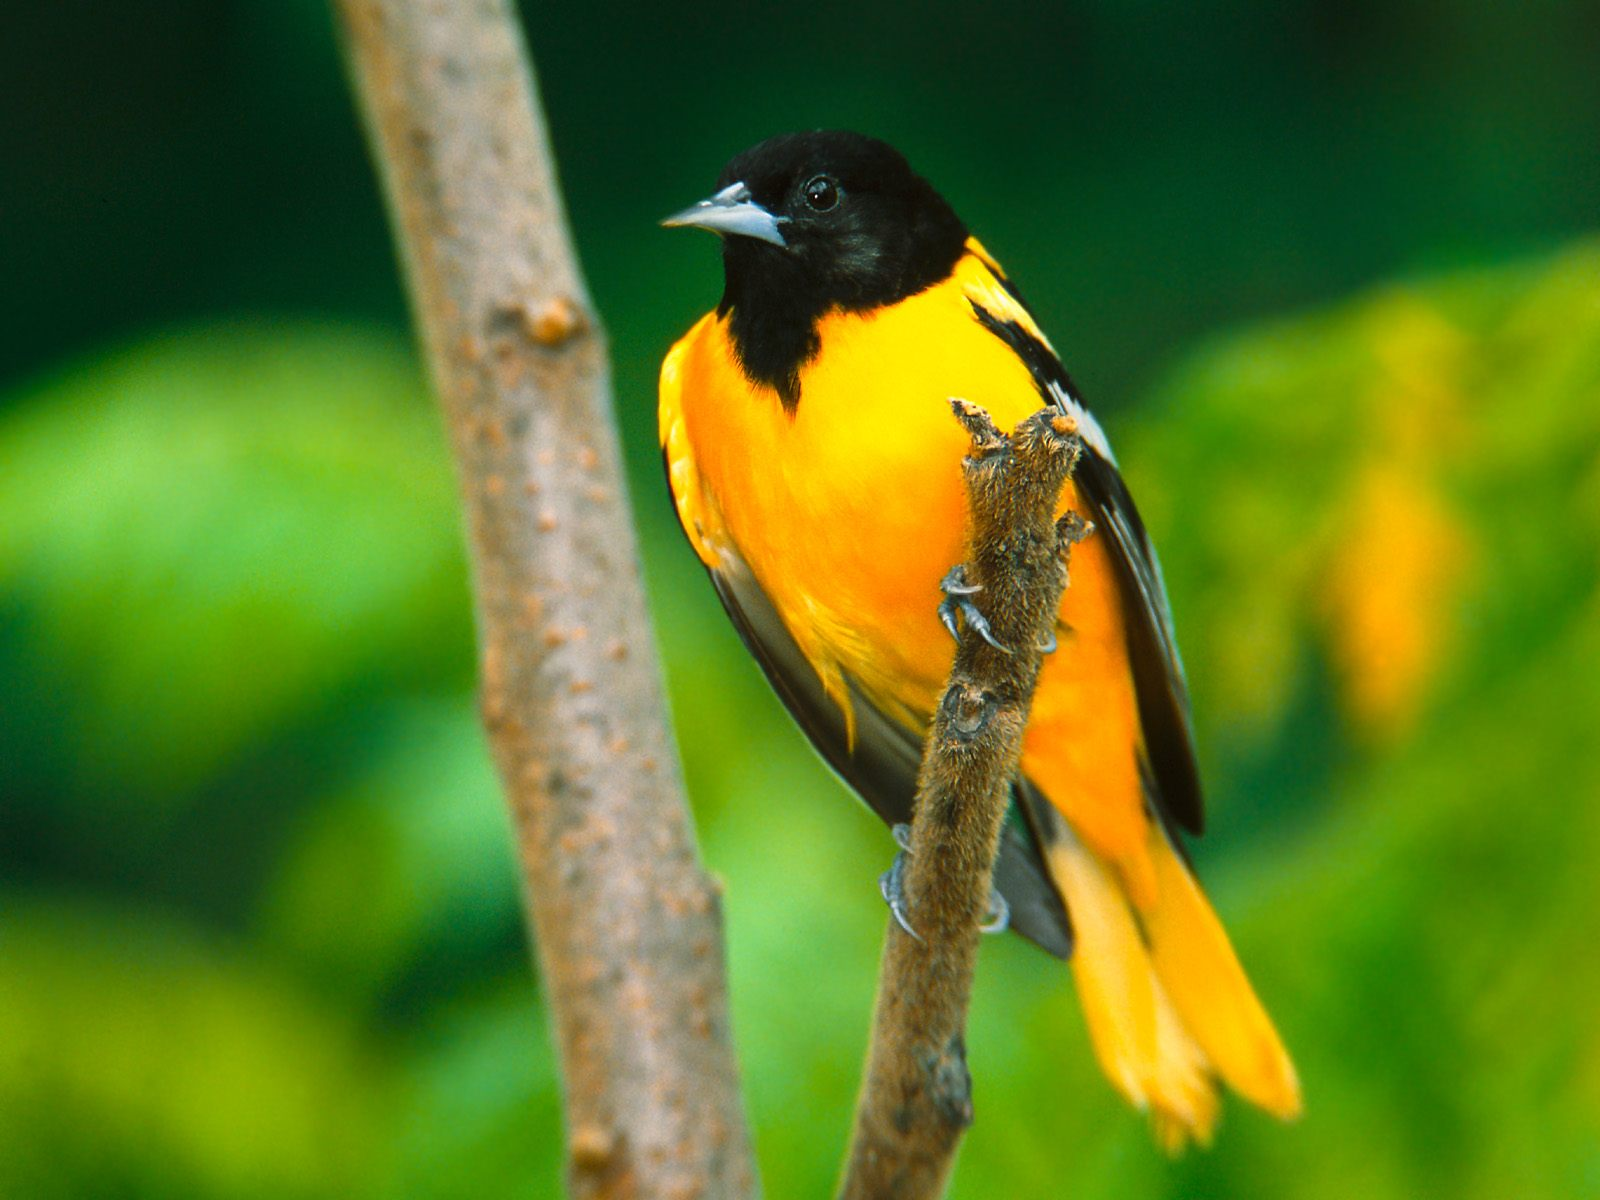 11 Birds Free Stock Photography Downloads Images